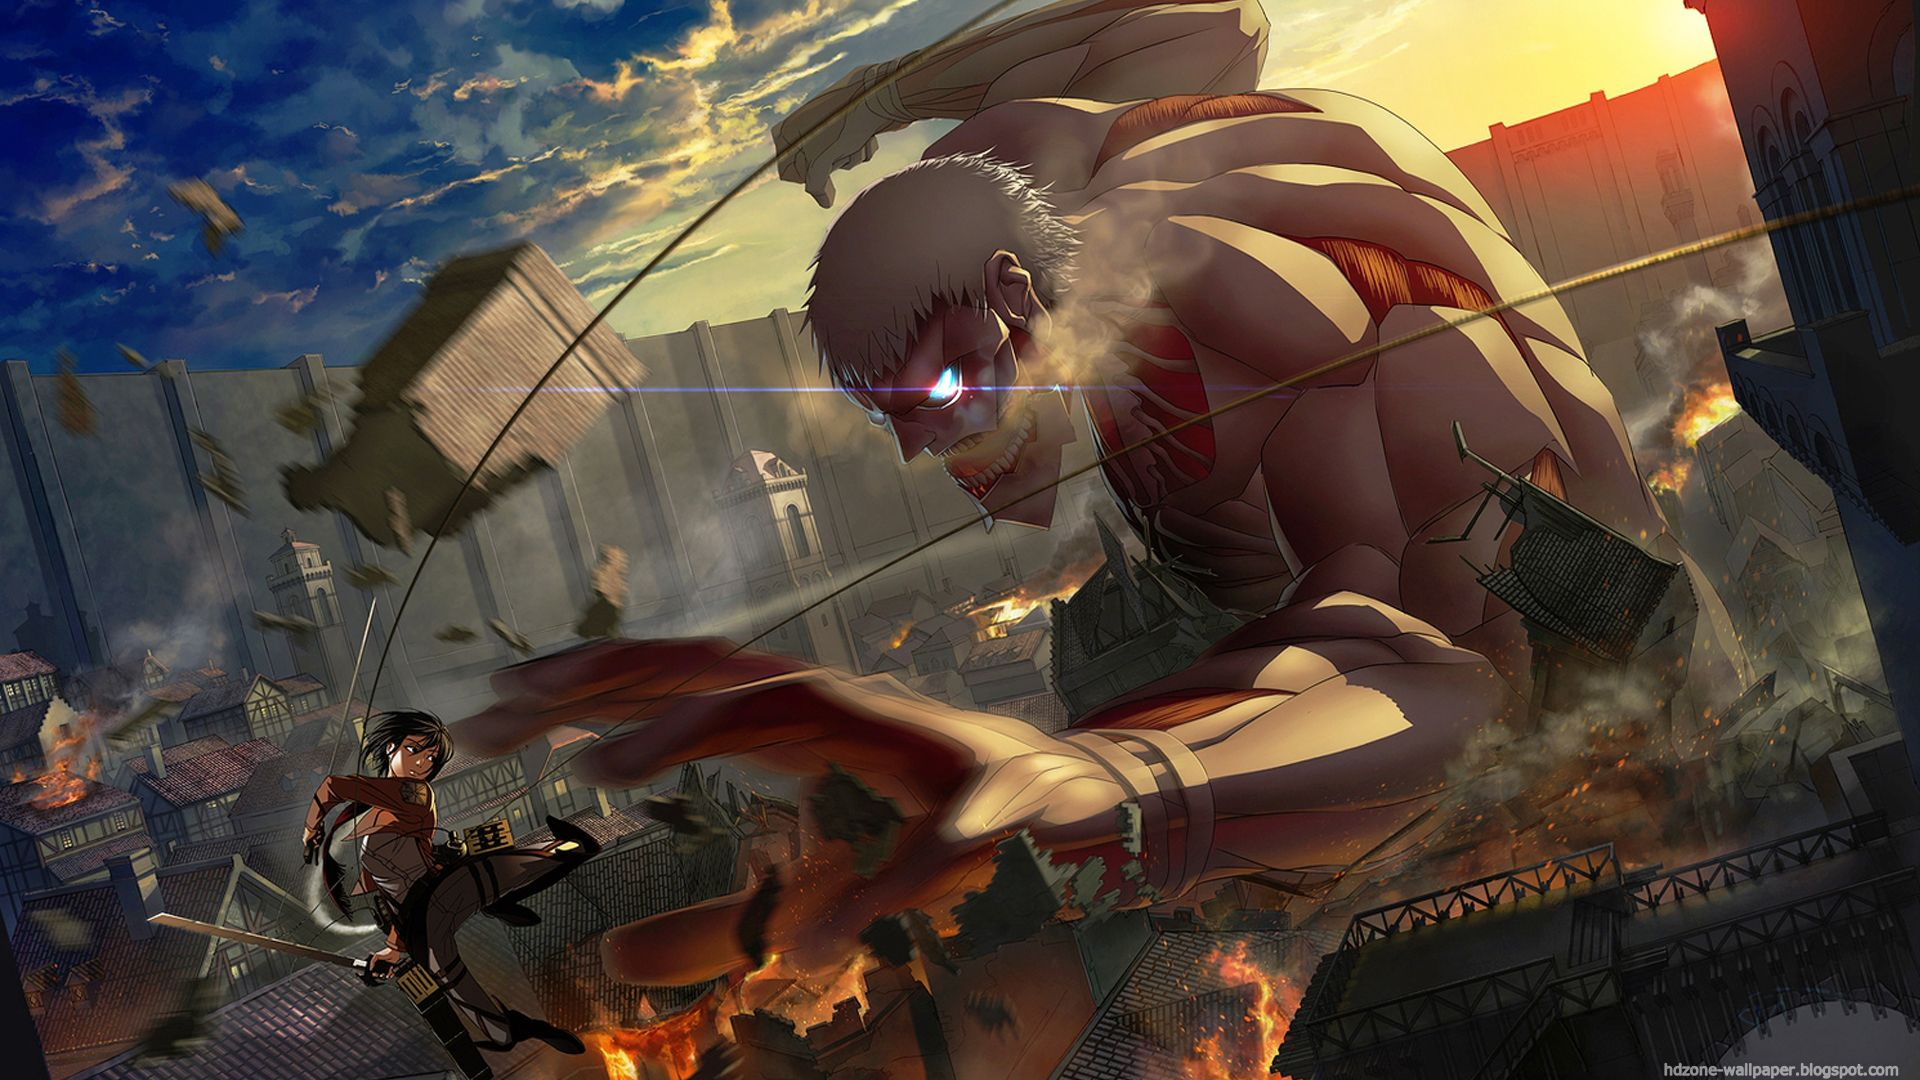 Themed Anime List (With images) Attack on titan art